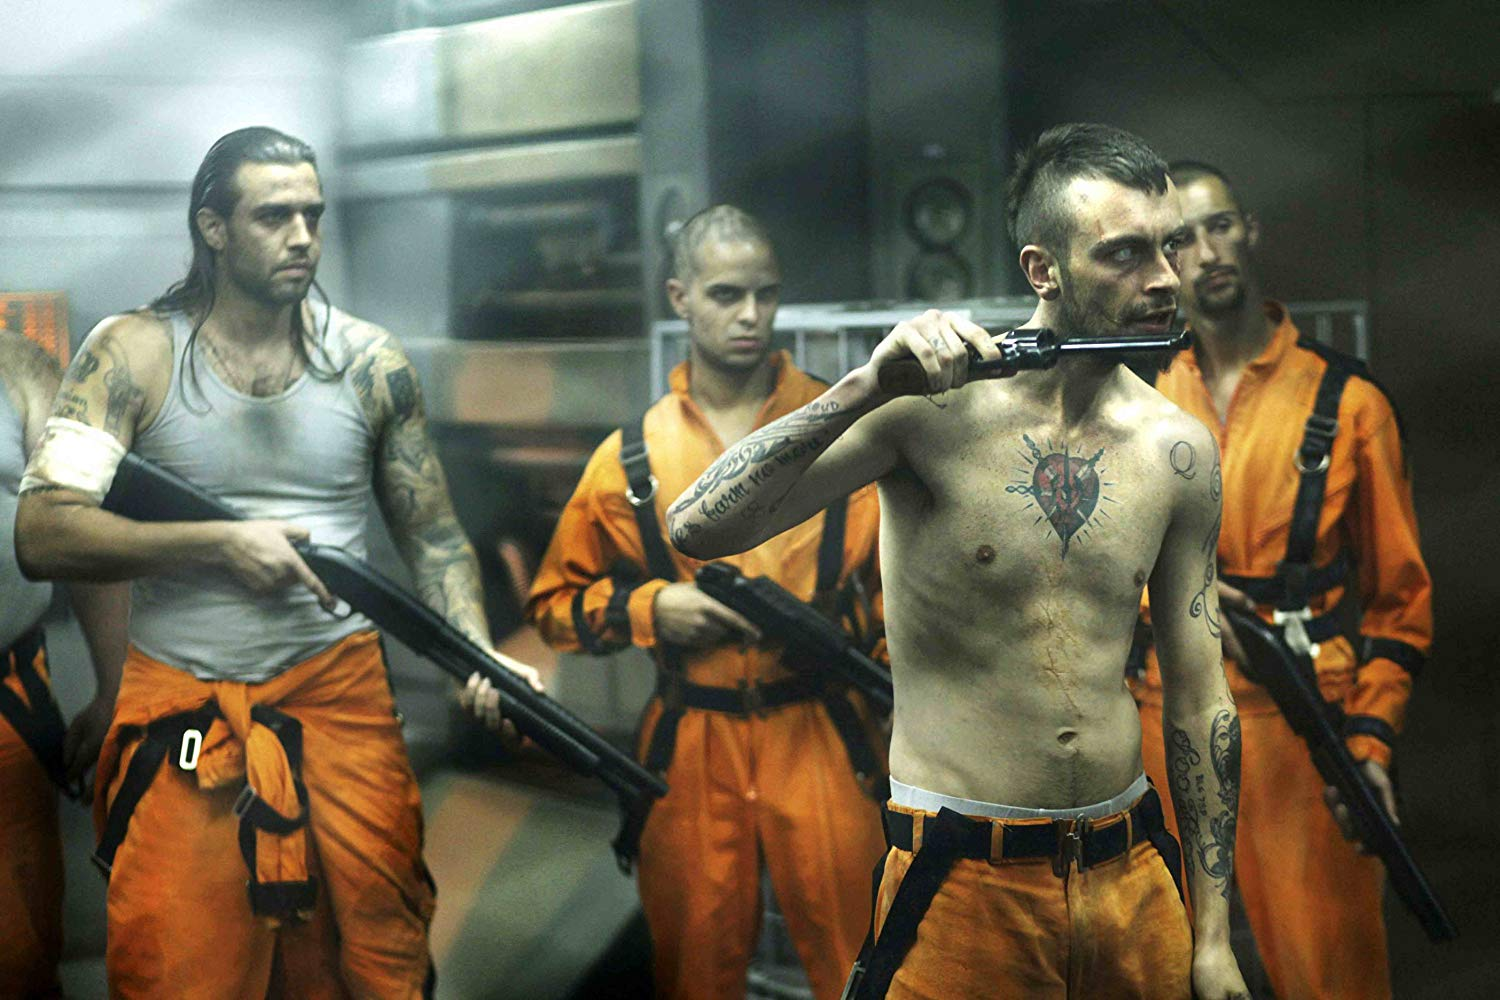 The psychopathic Hydell (Joseph Gilgun) (front) leads the prisoner's revolt in Lockout (2012)